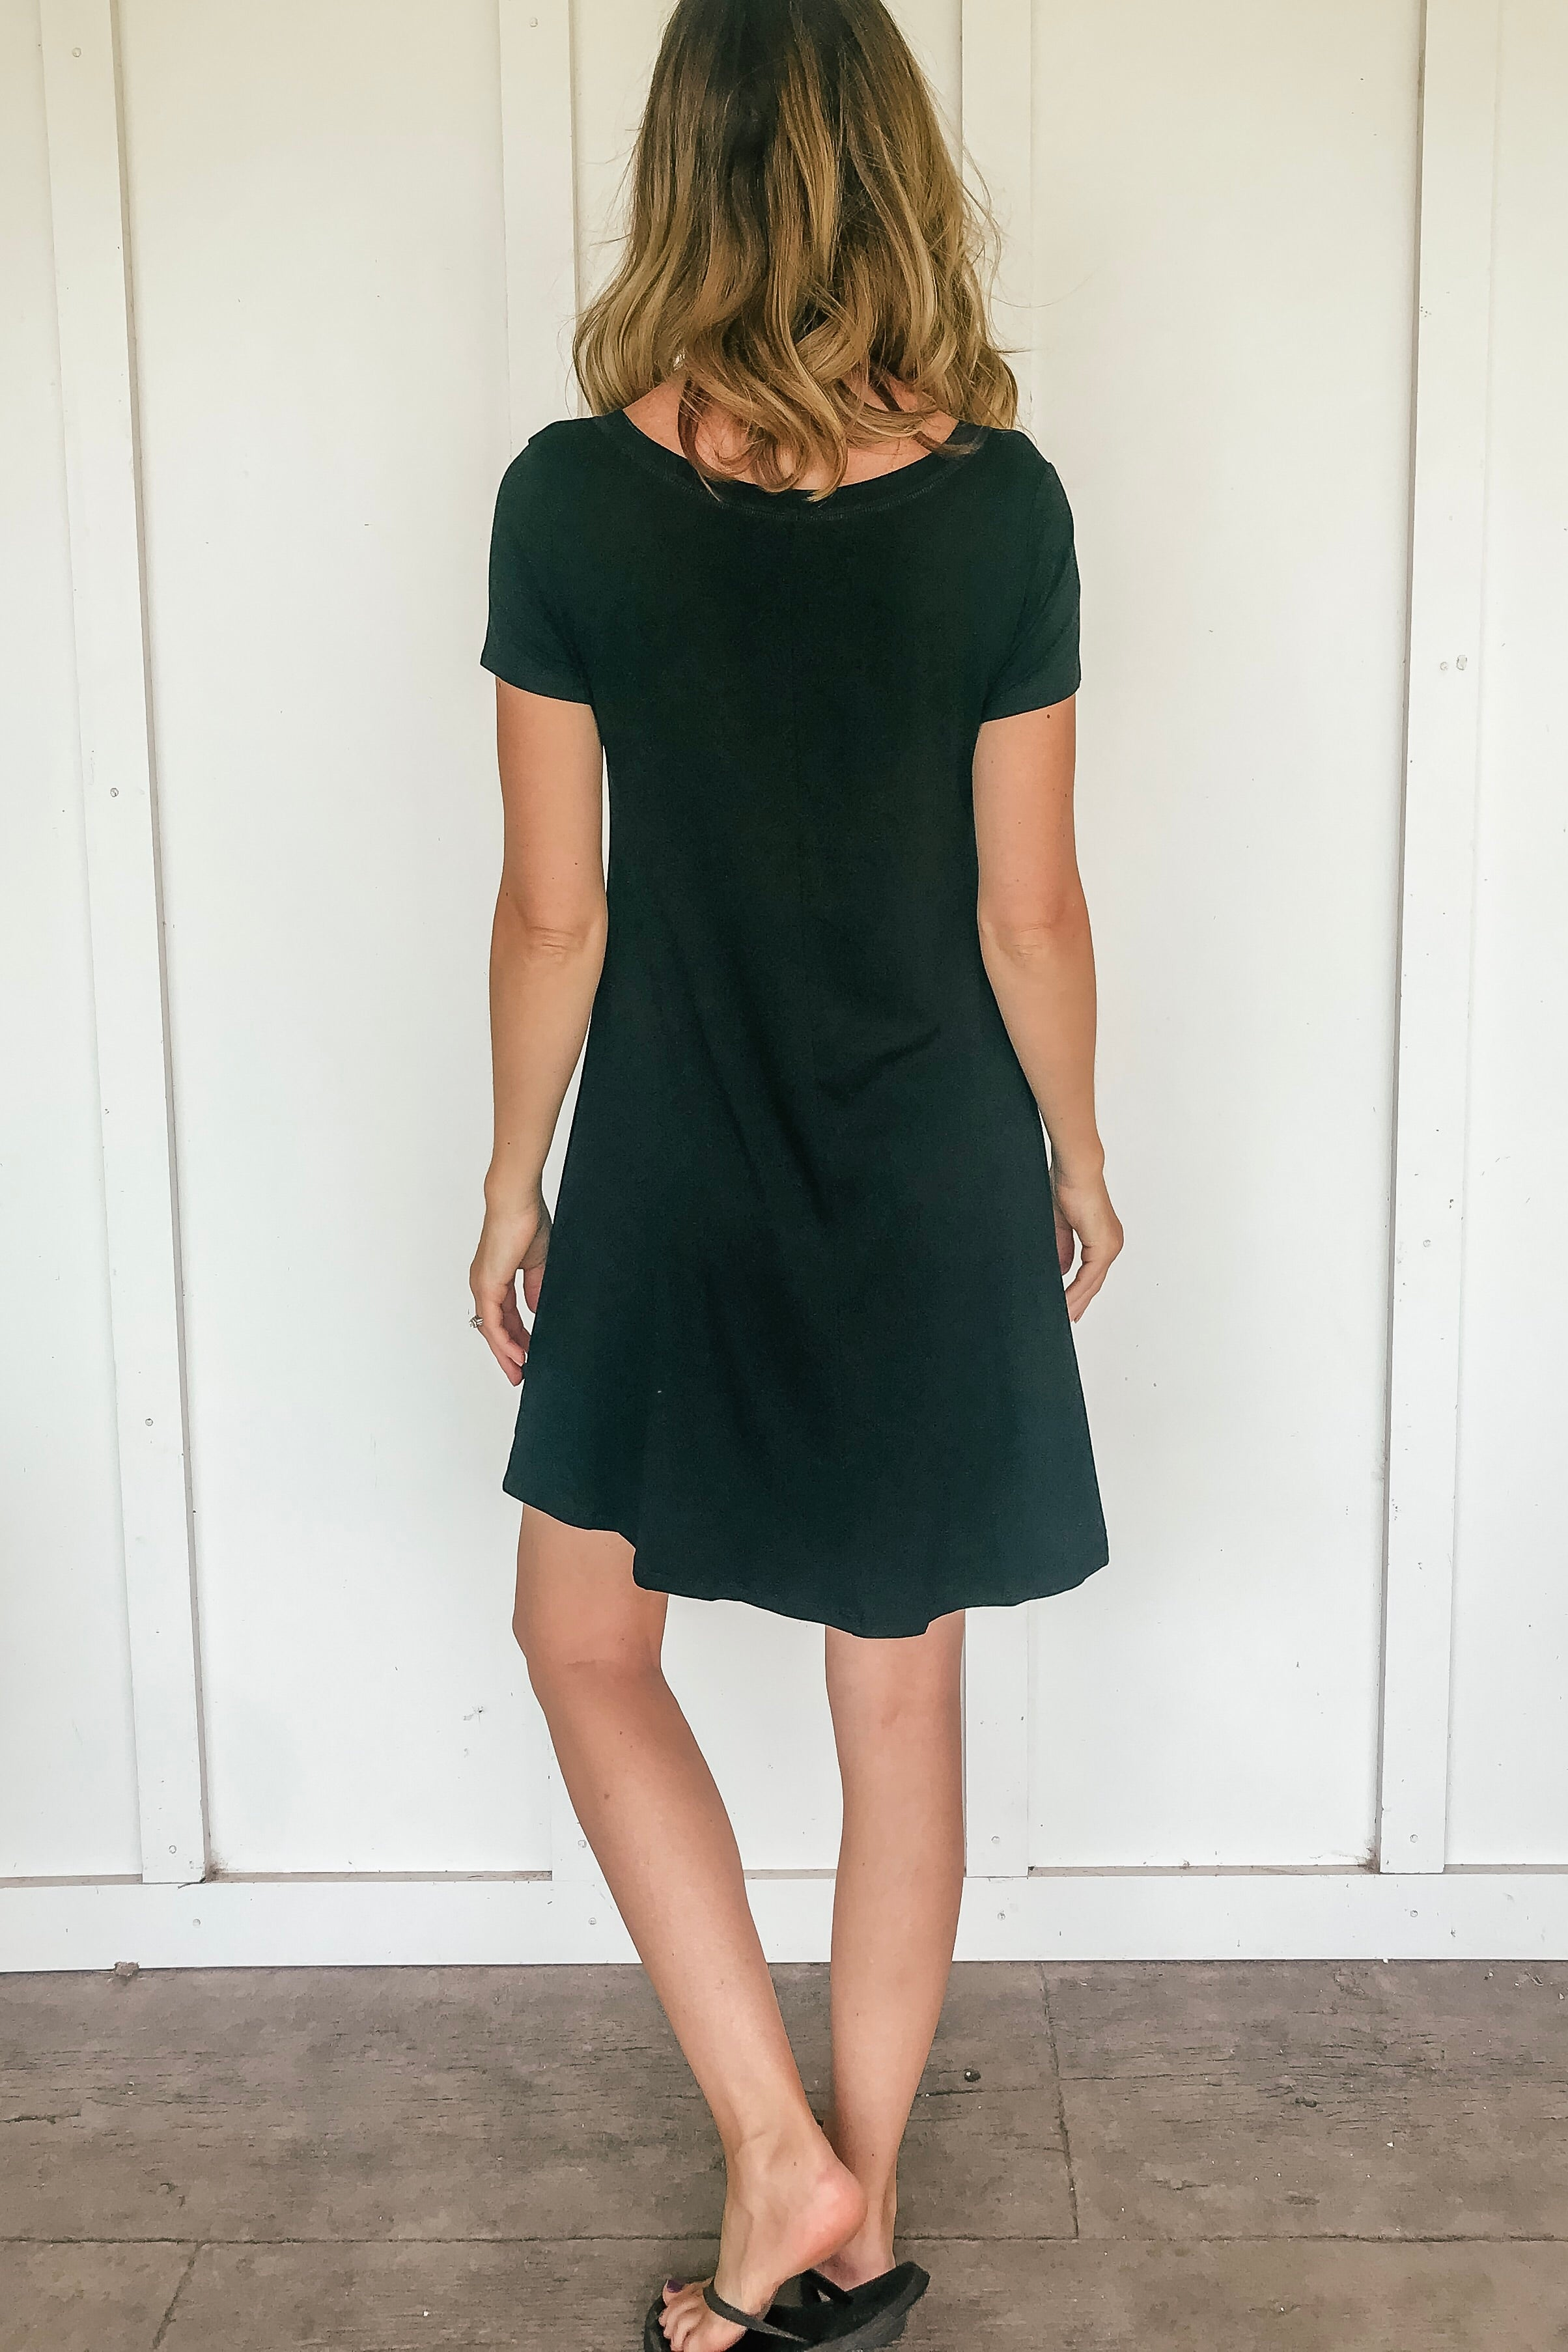 Stacy T-Shirt Dress in Black